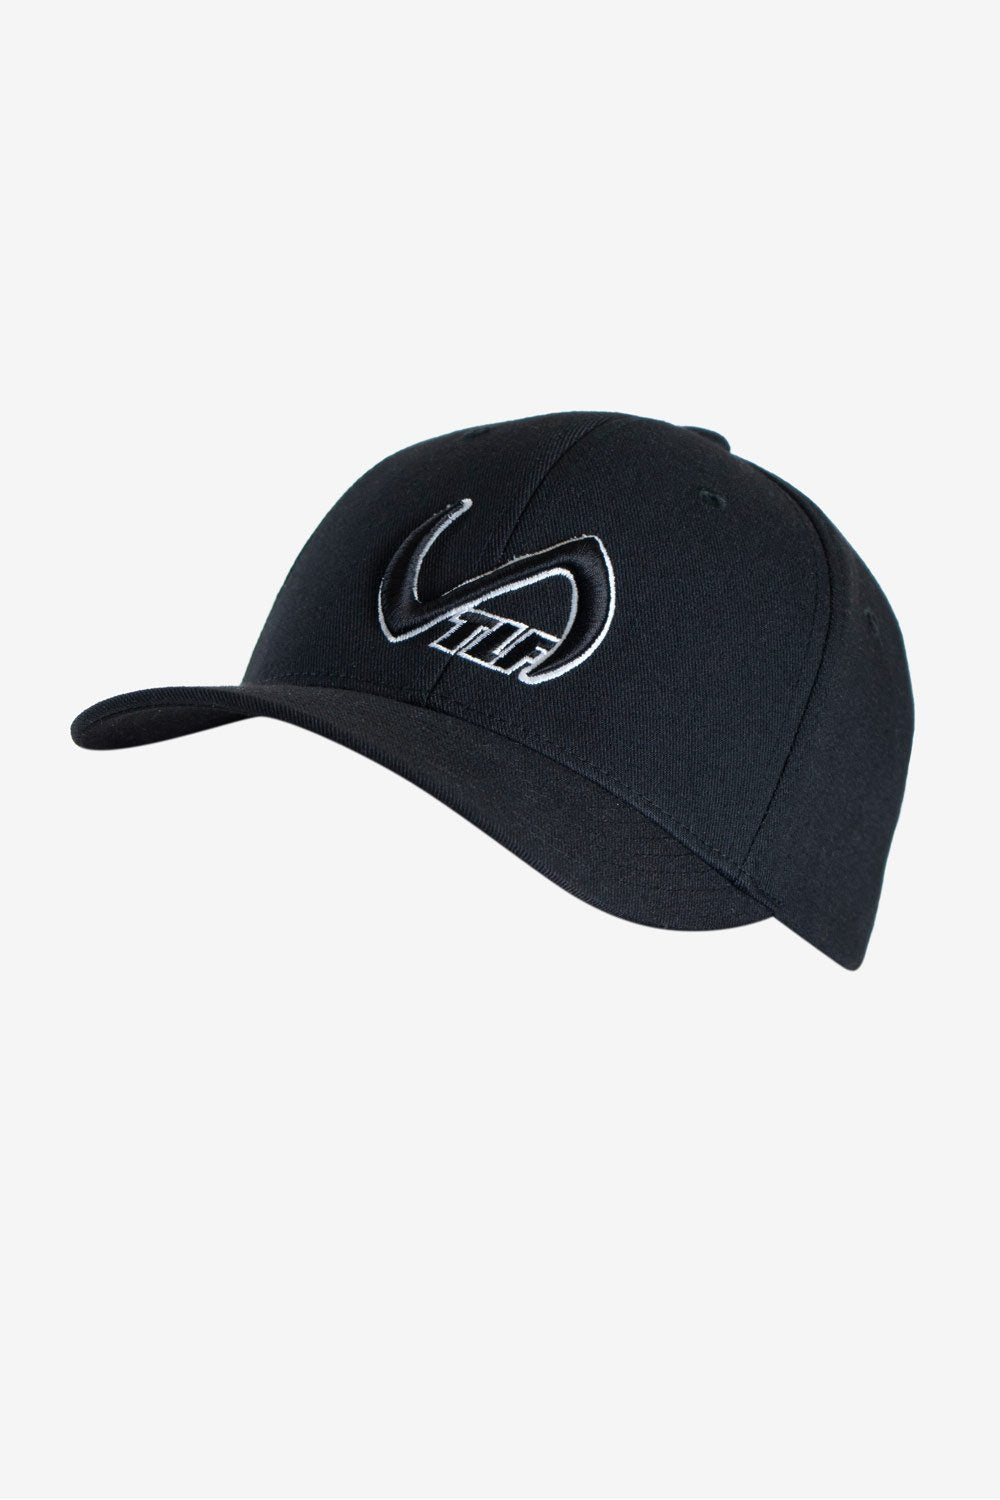 TLF Logo Original Hat - Accessories - TLF Apparel | Take Life Further